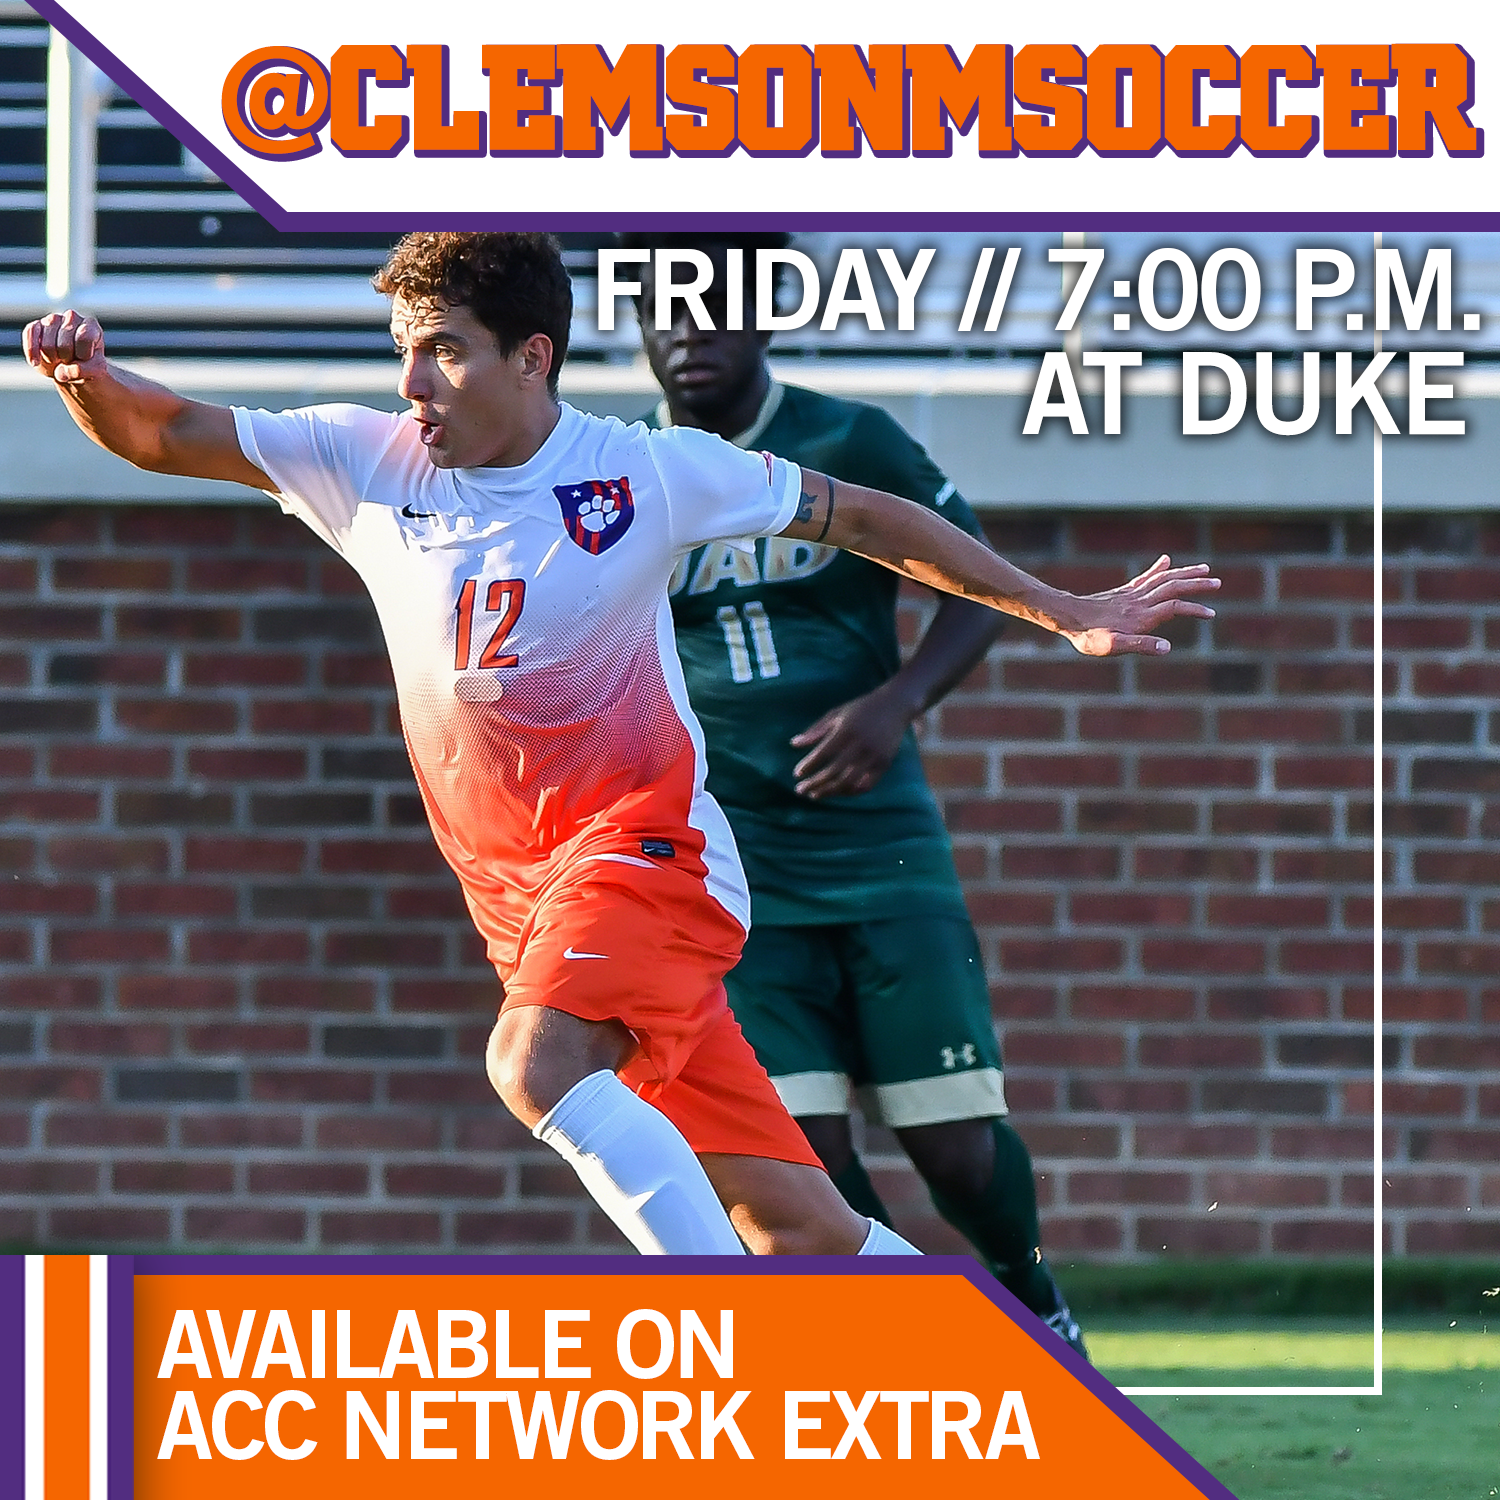 Clemson Travels to Duke for Final Exhibition Match